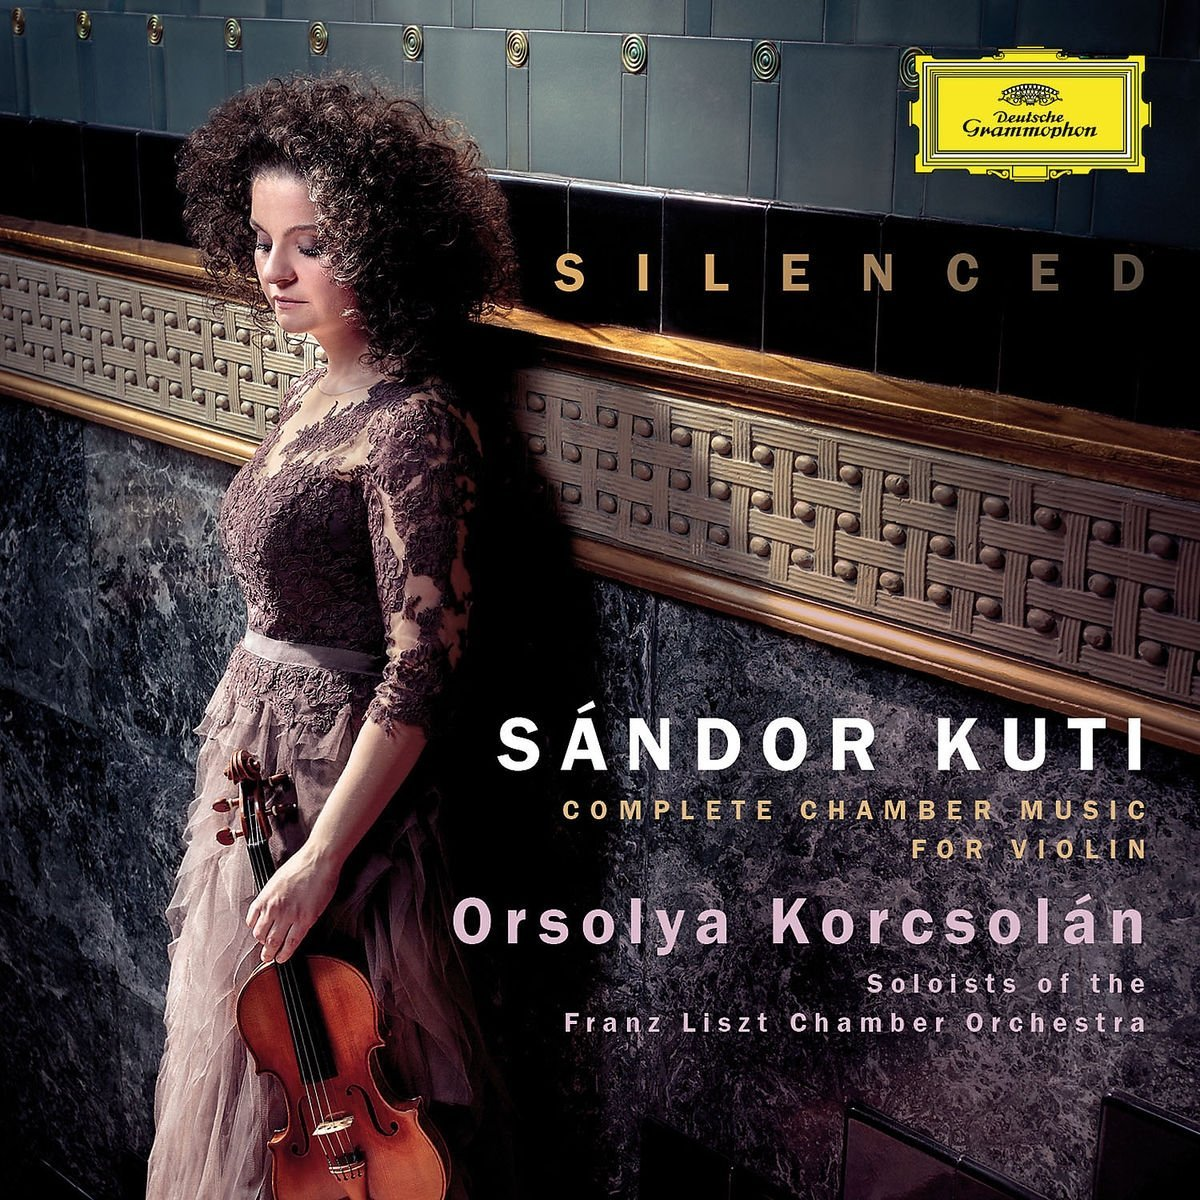 Music is the key: Orsolya Korcsolán / Soloists of the Franz